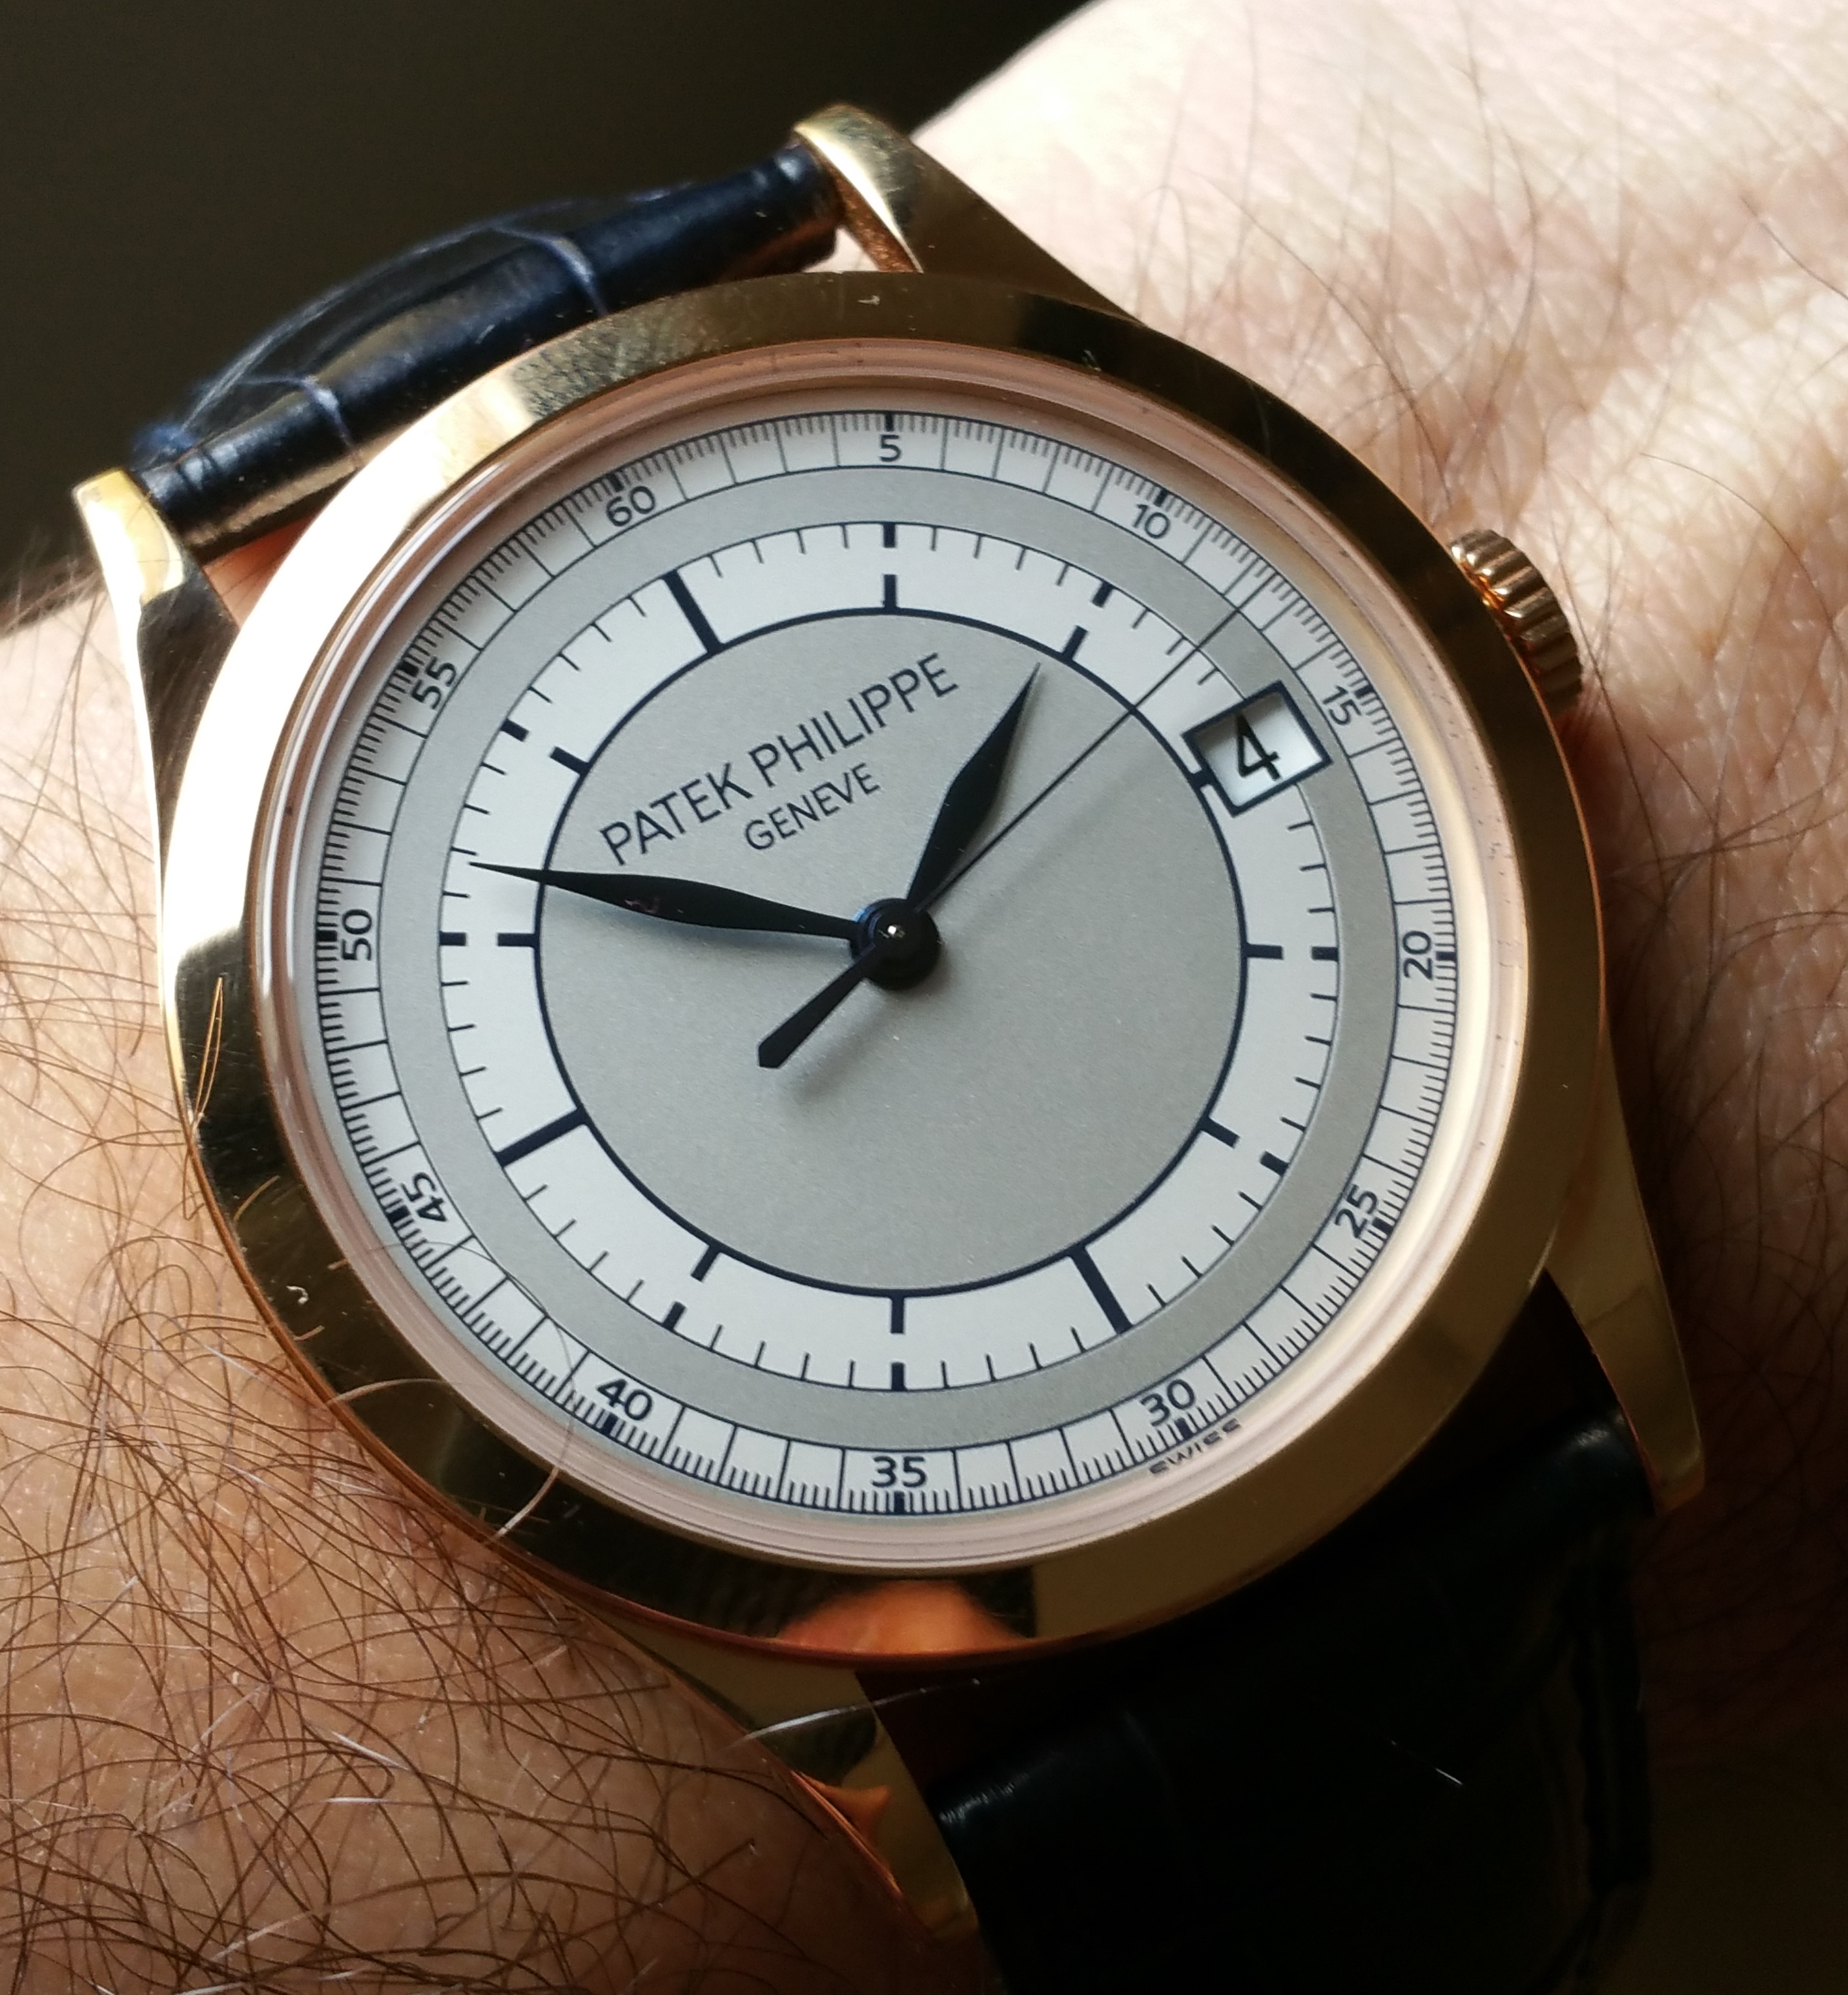 2007 Patek Philippe 5196R-001 Rose Gold Sector Dial with Box & Papers